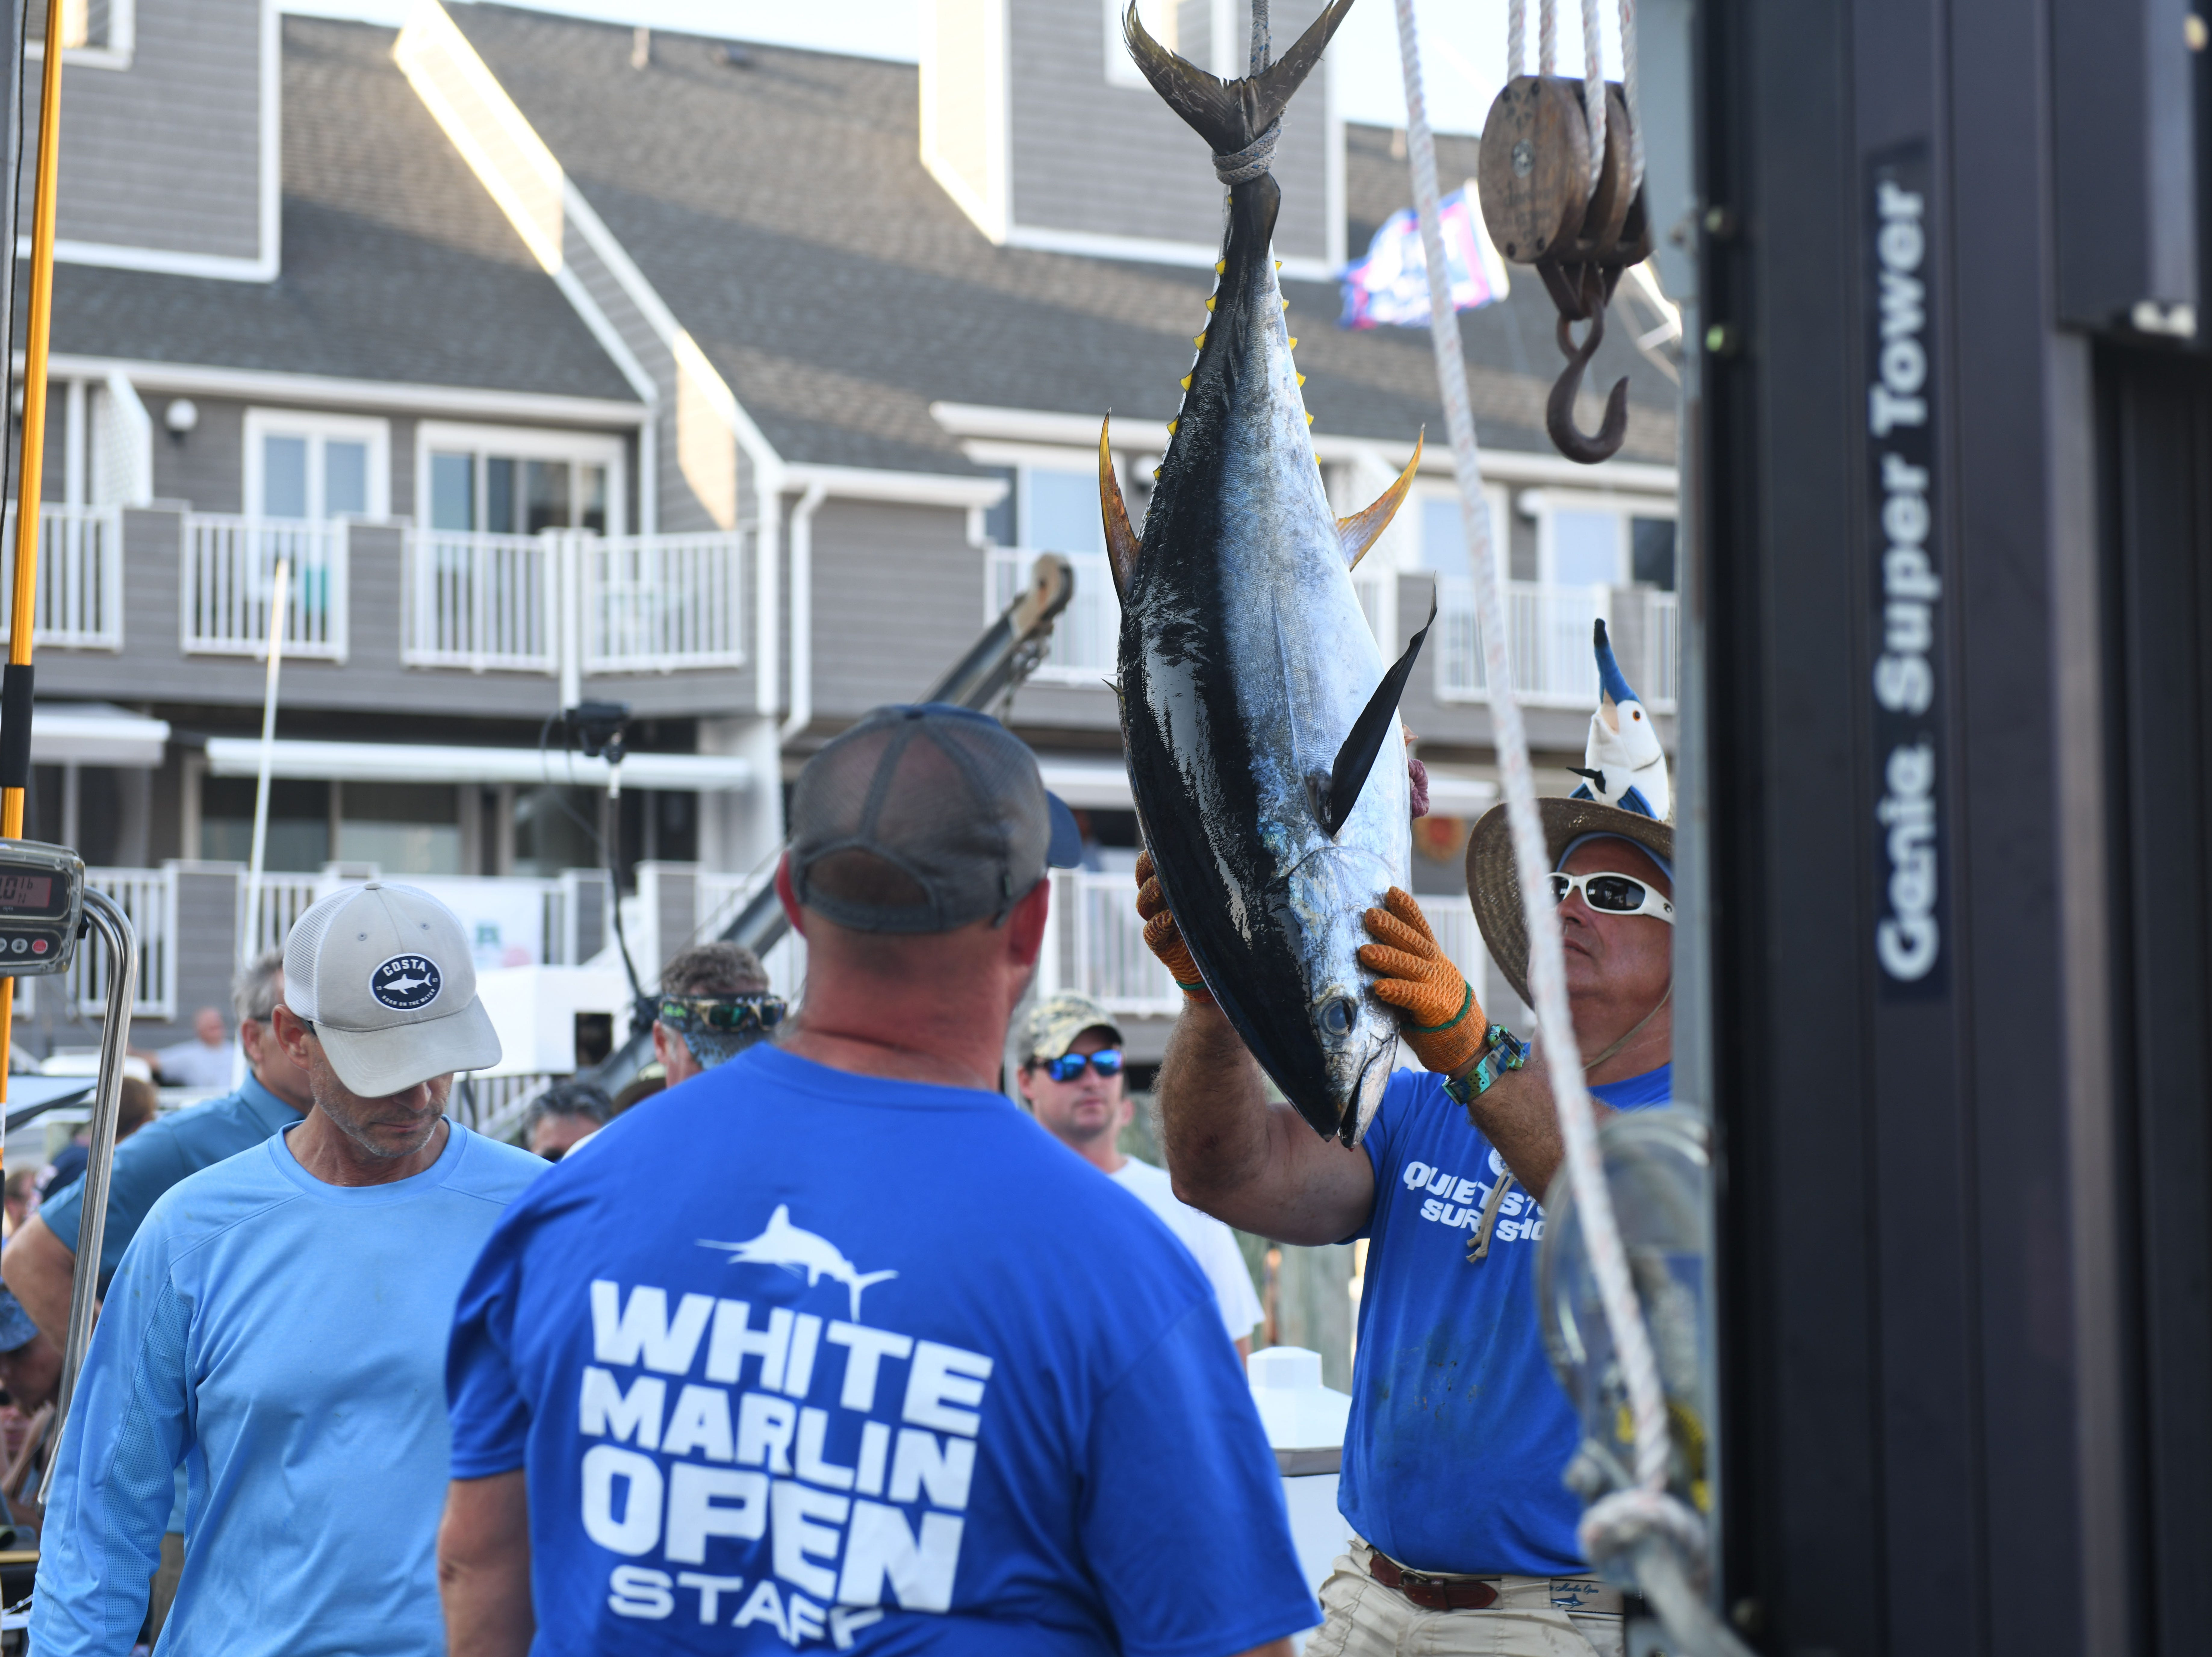 A 54.5lb tuna was brought in by Rhonda's Osprey on Monday, August 6, 2018 during the 45th Annual White Marlin Open in Ocean City, Md.